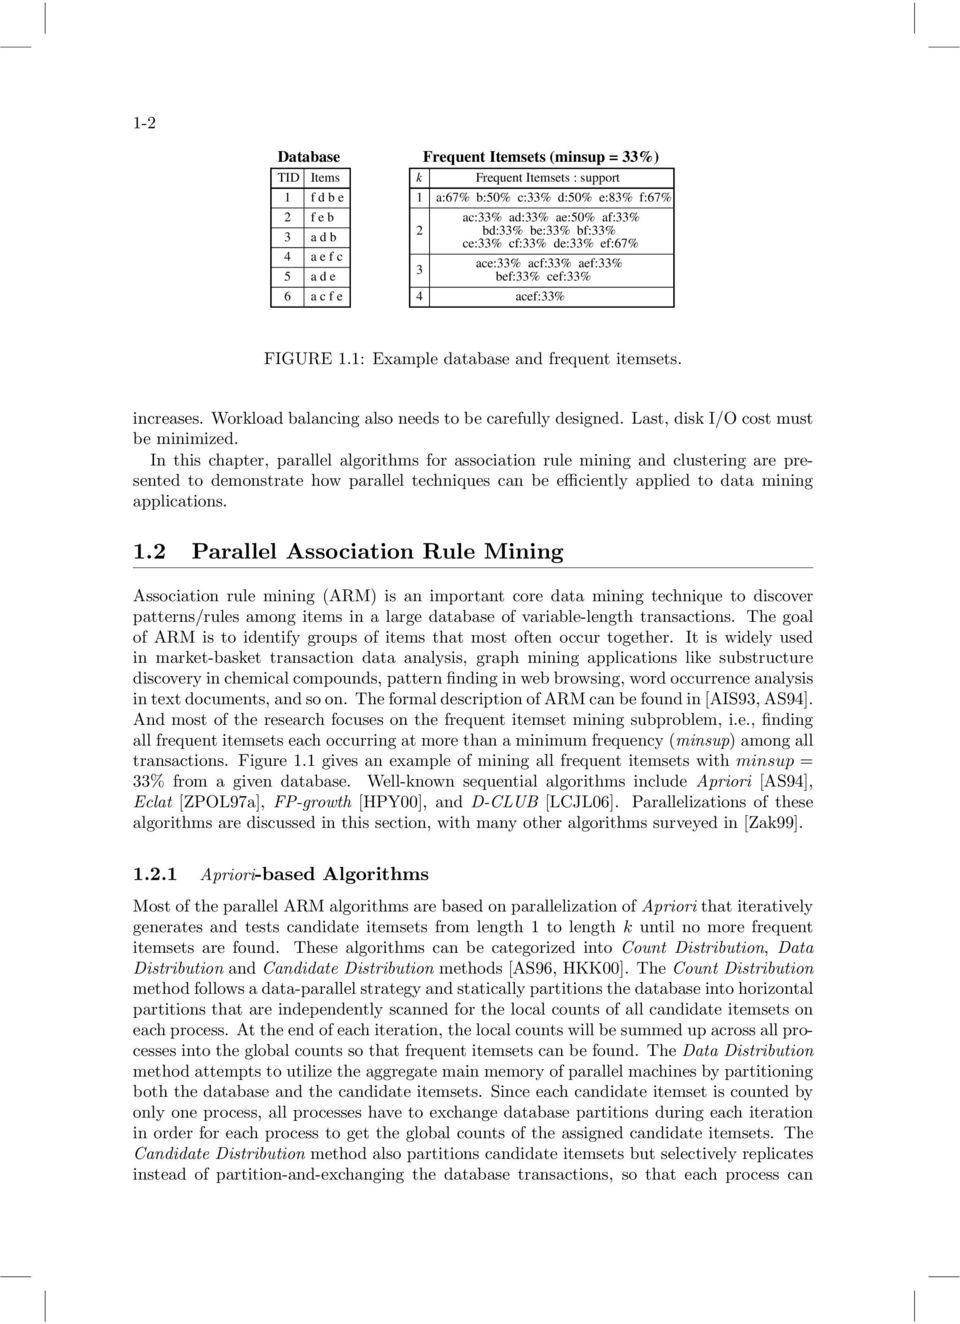 Parallel Data Mining Algorithms for Association Rules and Clustering